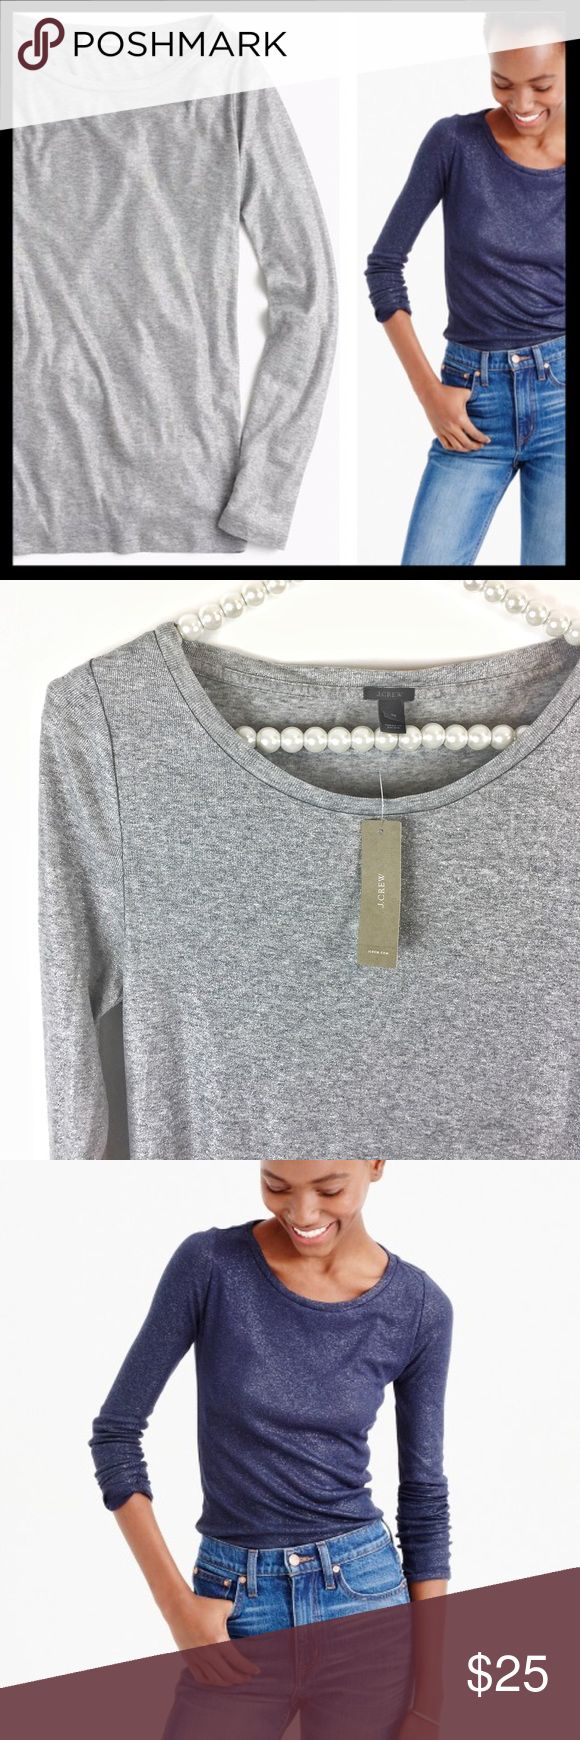 SOLD 💙 j. crew // metallic long sleeve silver tee Our classic T-shirt that's cut a little bit slimmer for a flattering (slash perfect) fit. This style features a metallic print for a slightly dressier look. Rayon/cotton. Long sleeves. Slim fit. Awesome for layering! Selling the silver colorway. Brand new with tags. ⭐️ Reduced from $25. J. Crew Tops Tees - Long Sleeve